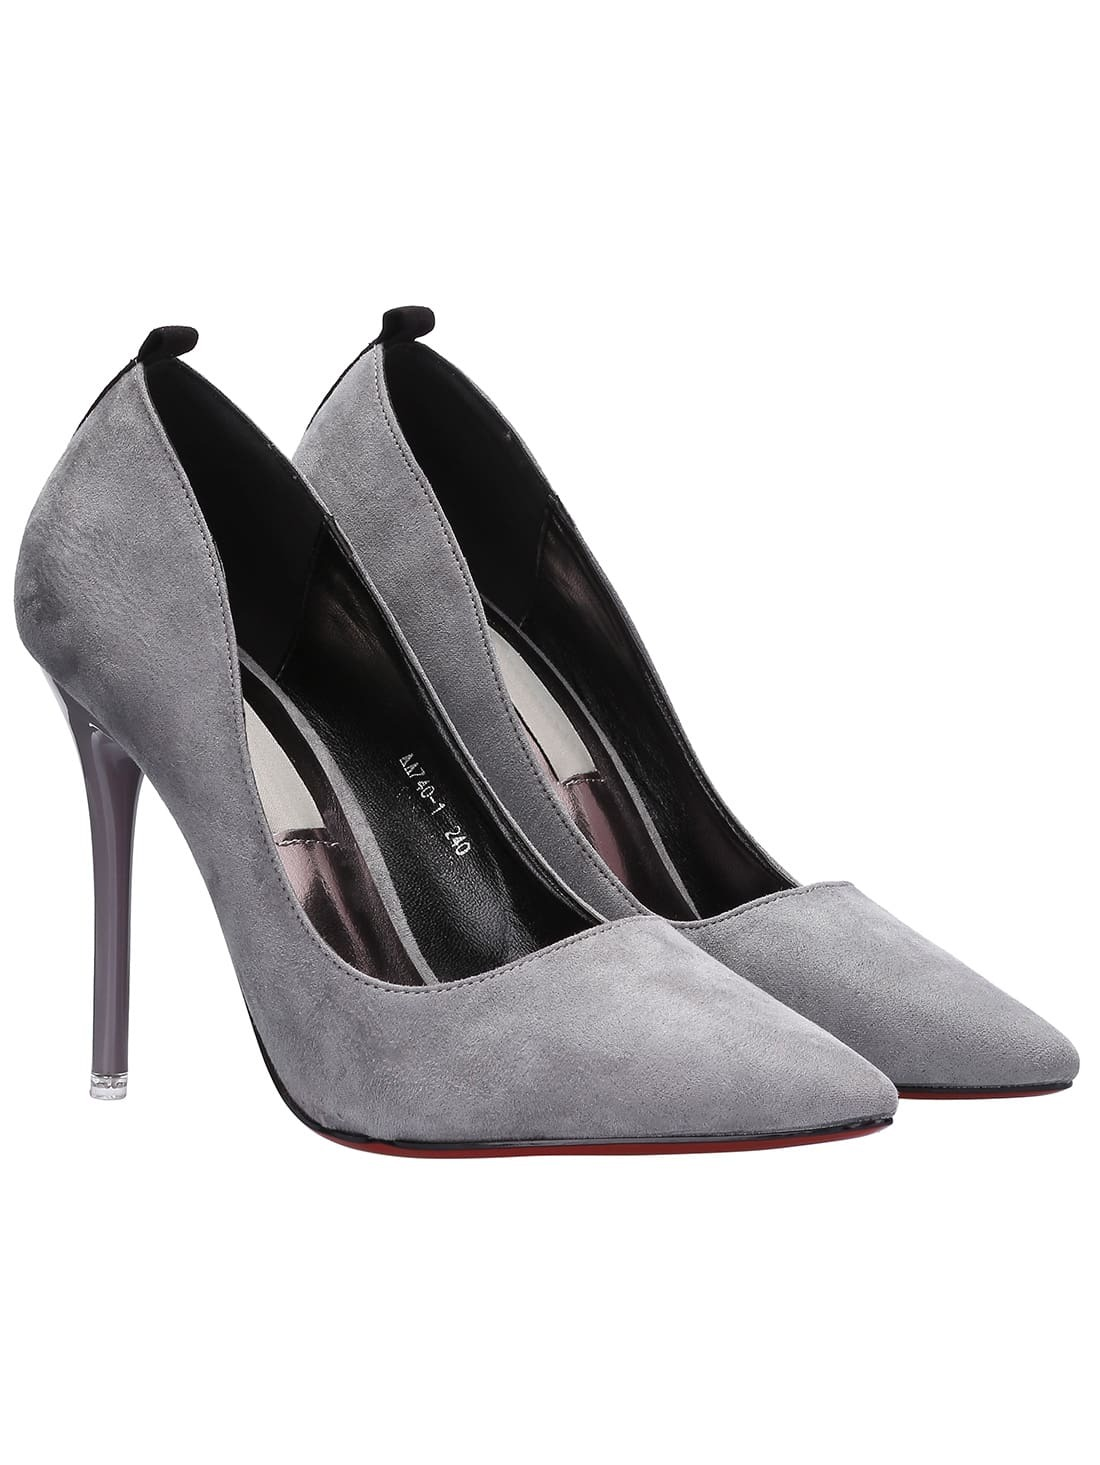 Find great deals on eBay for grey suede pumps. Shop with confidence.